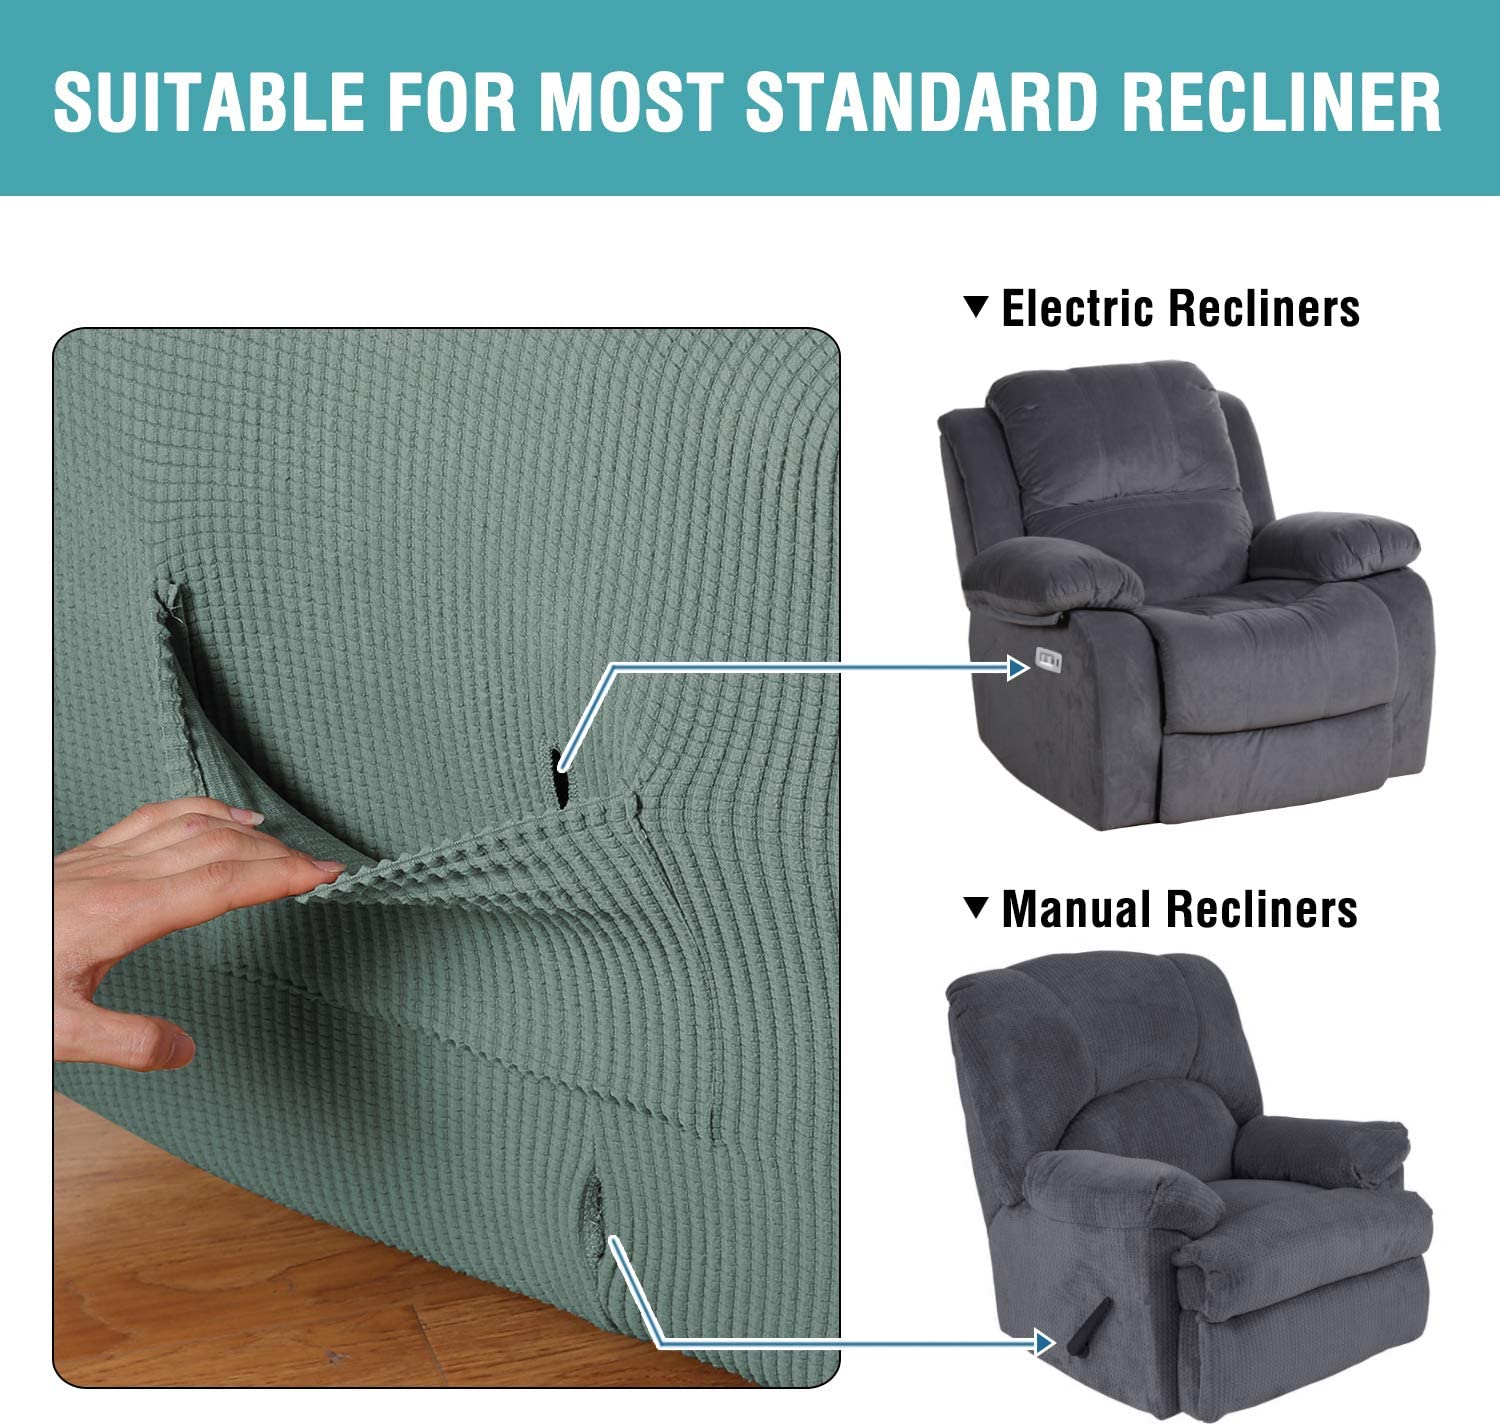 Recliner, Black H.Versailtex 1 Piece Sofa Cover High Stretch Jacquard Fabric Furniture Slipcover Stay in Place Soft Spandex Form Fit Recliner Slipcovers Skid Resistance Machine Washable